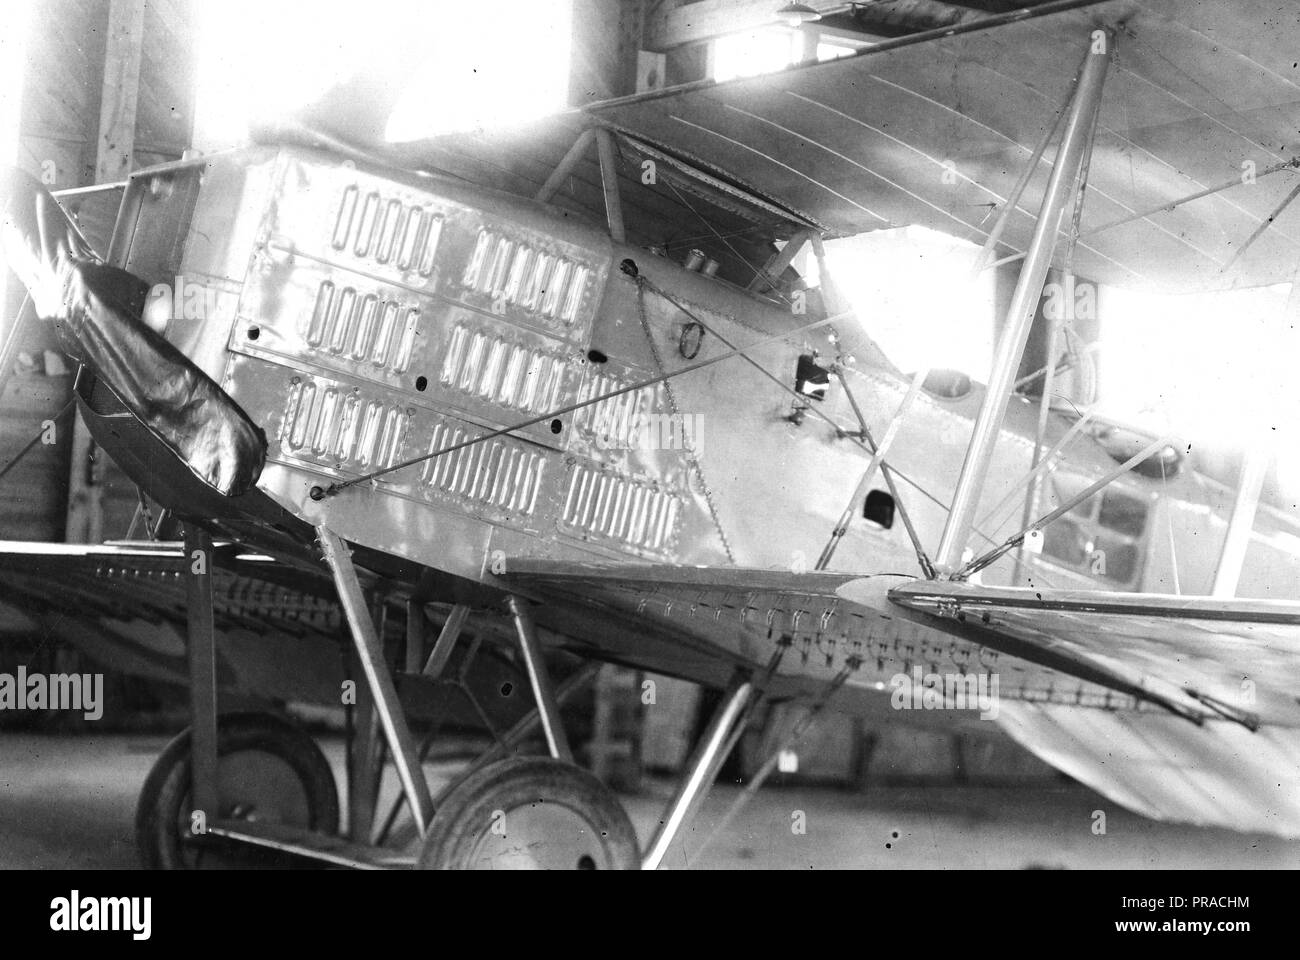 11/1/1918 - Front view of French Brequet Airplane, Mineola, L.I - Stock Image